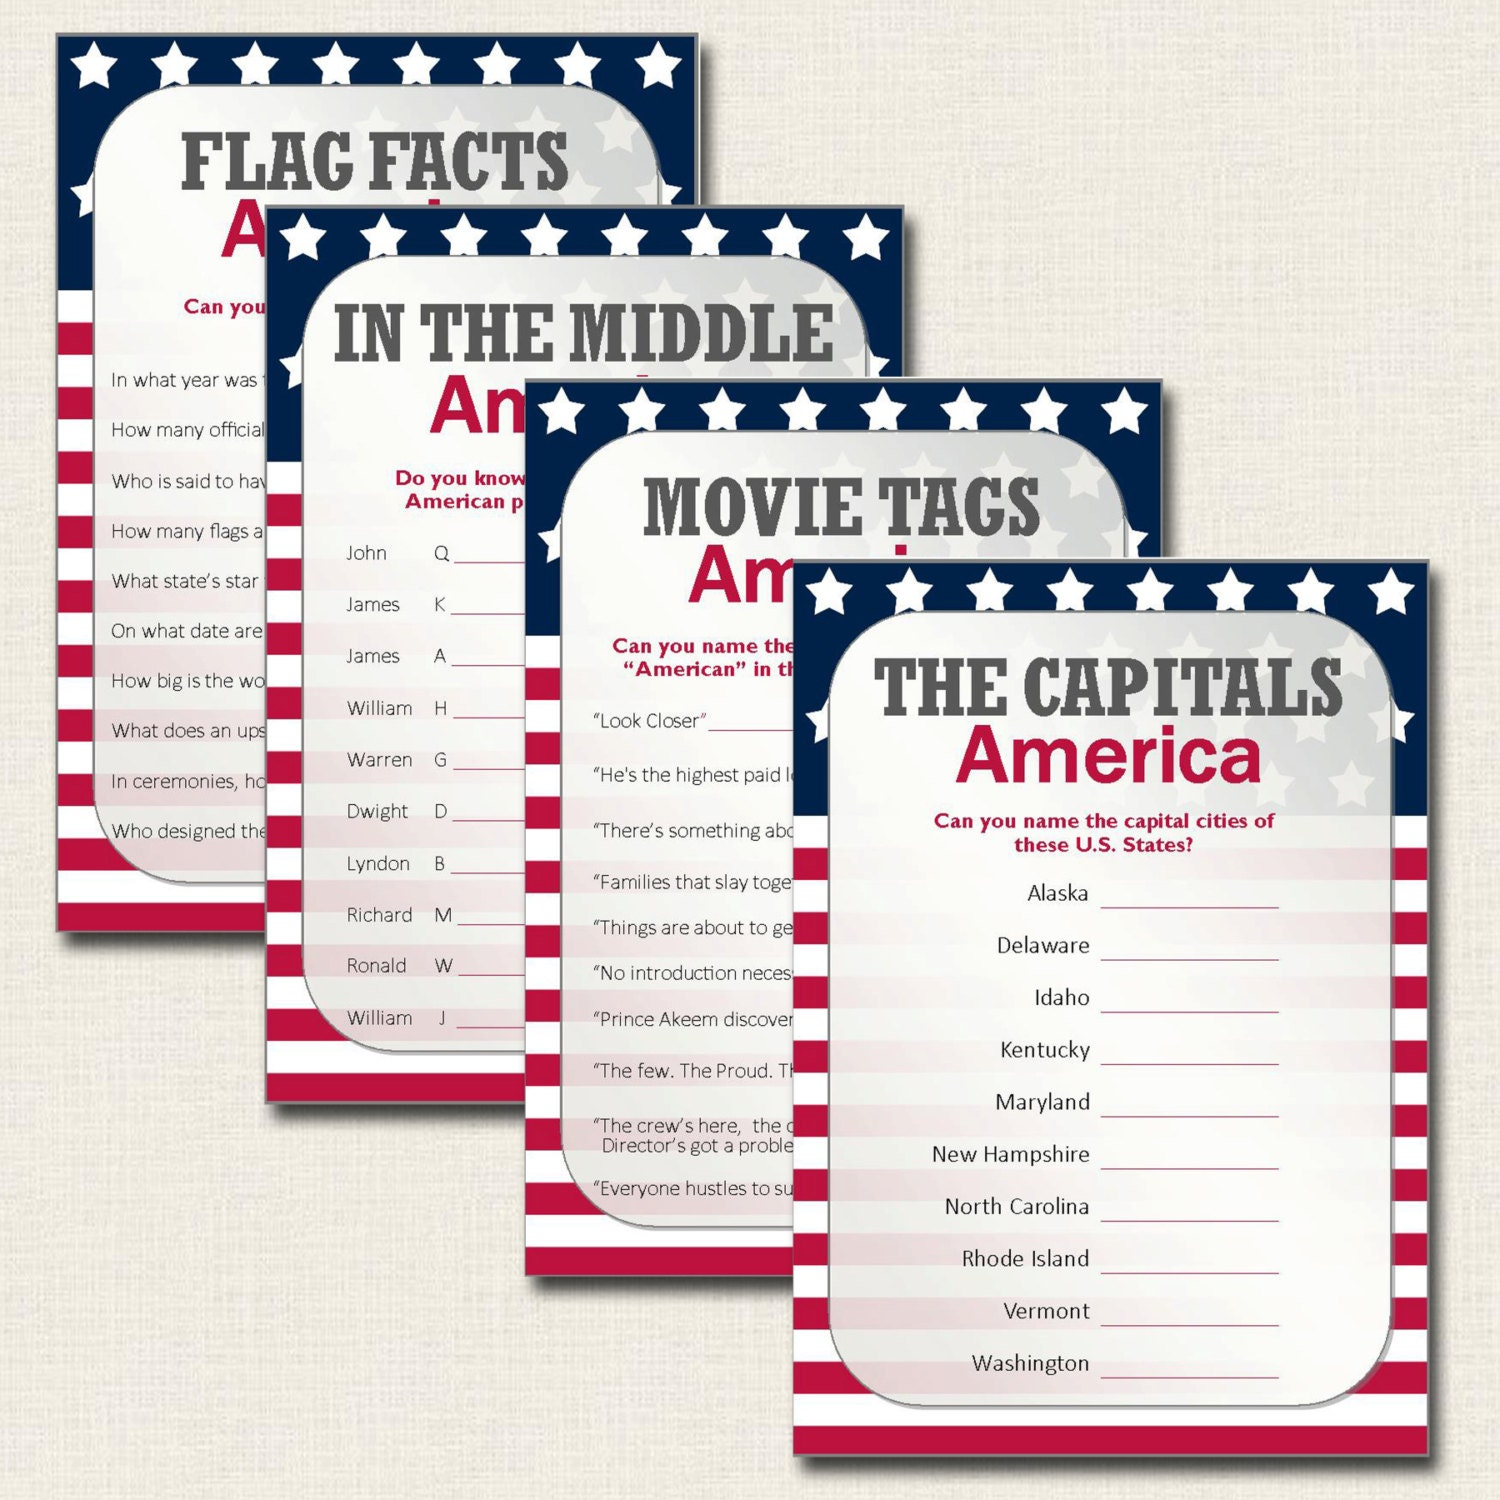 image regarding 4th of July Trivia Printable known as 4th of July Game titles - Patriotic United states The us Quiz Playing cards - Immediate Obtain PDF Printable Record - Liberty Thanksgiving Flag Working day - Entertaining